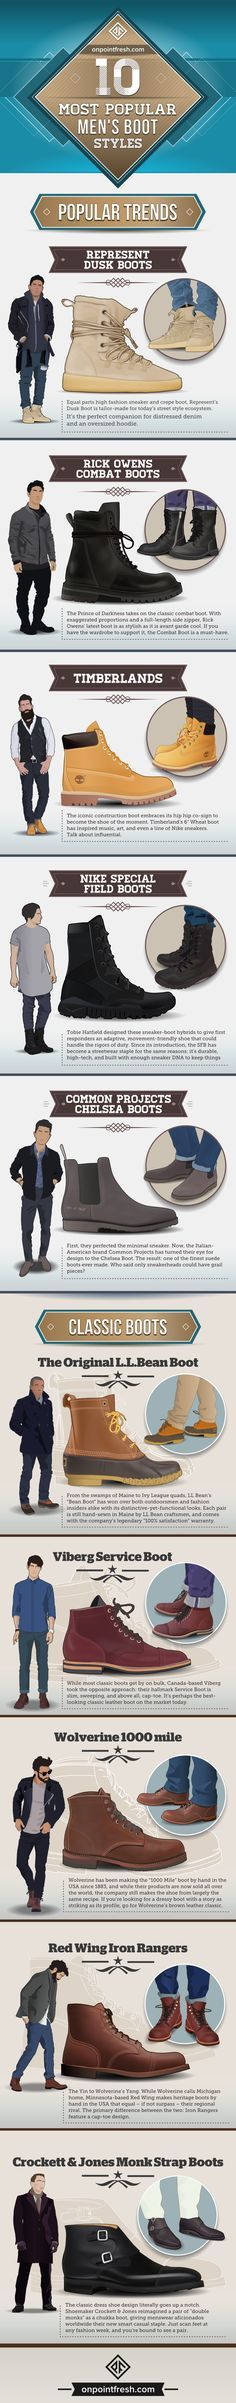 mens boots infographic. Find your Inspiration @ #DapperNDame Pinterest. dapperanddame.com